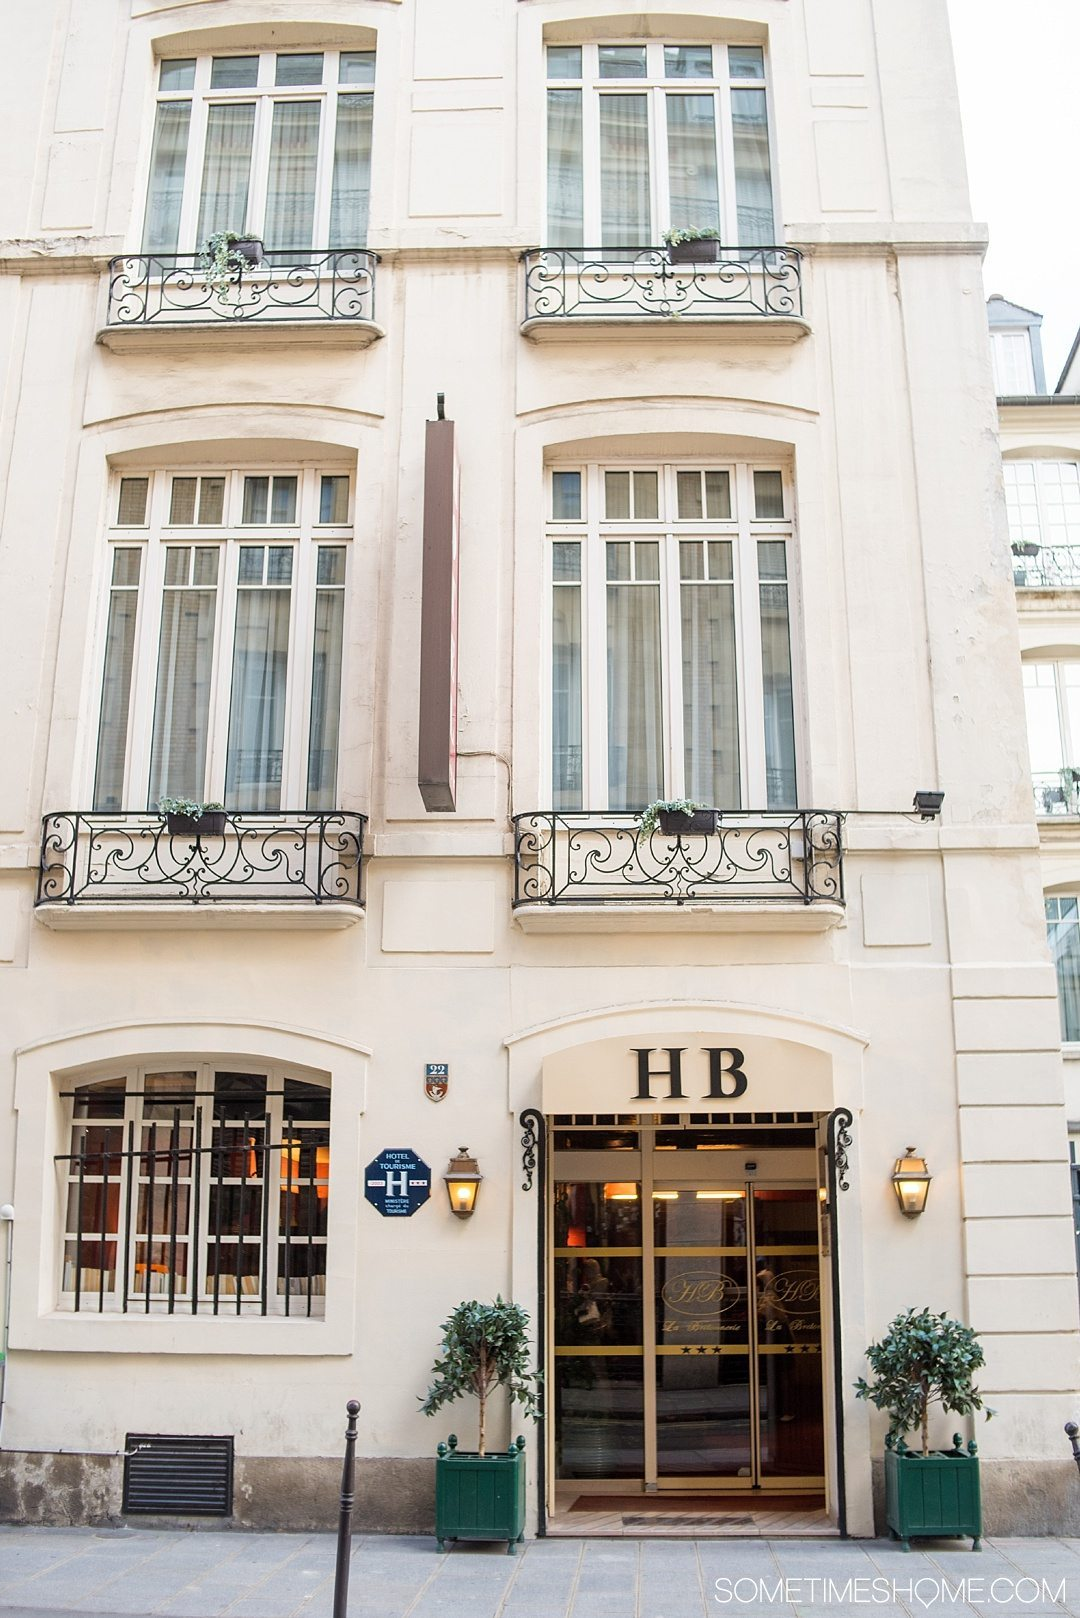 Le marais paris accommodation boutique hotel in france for Paris boutiques hotels